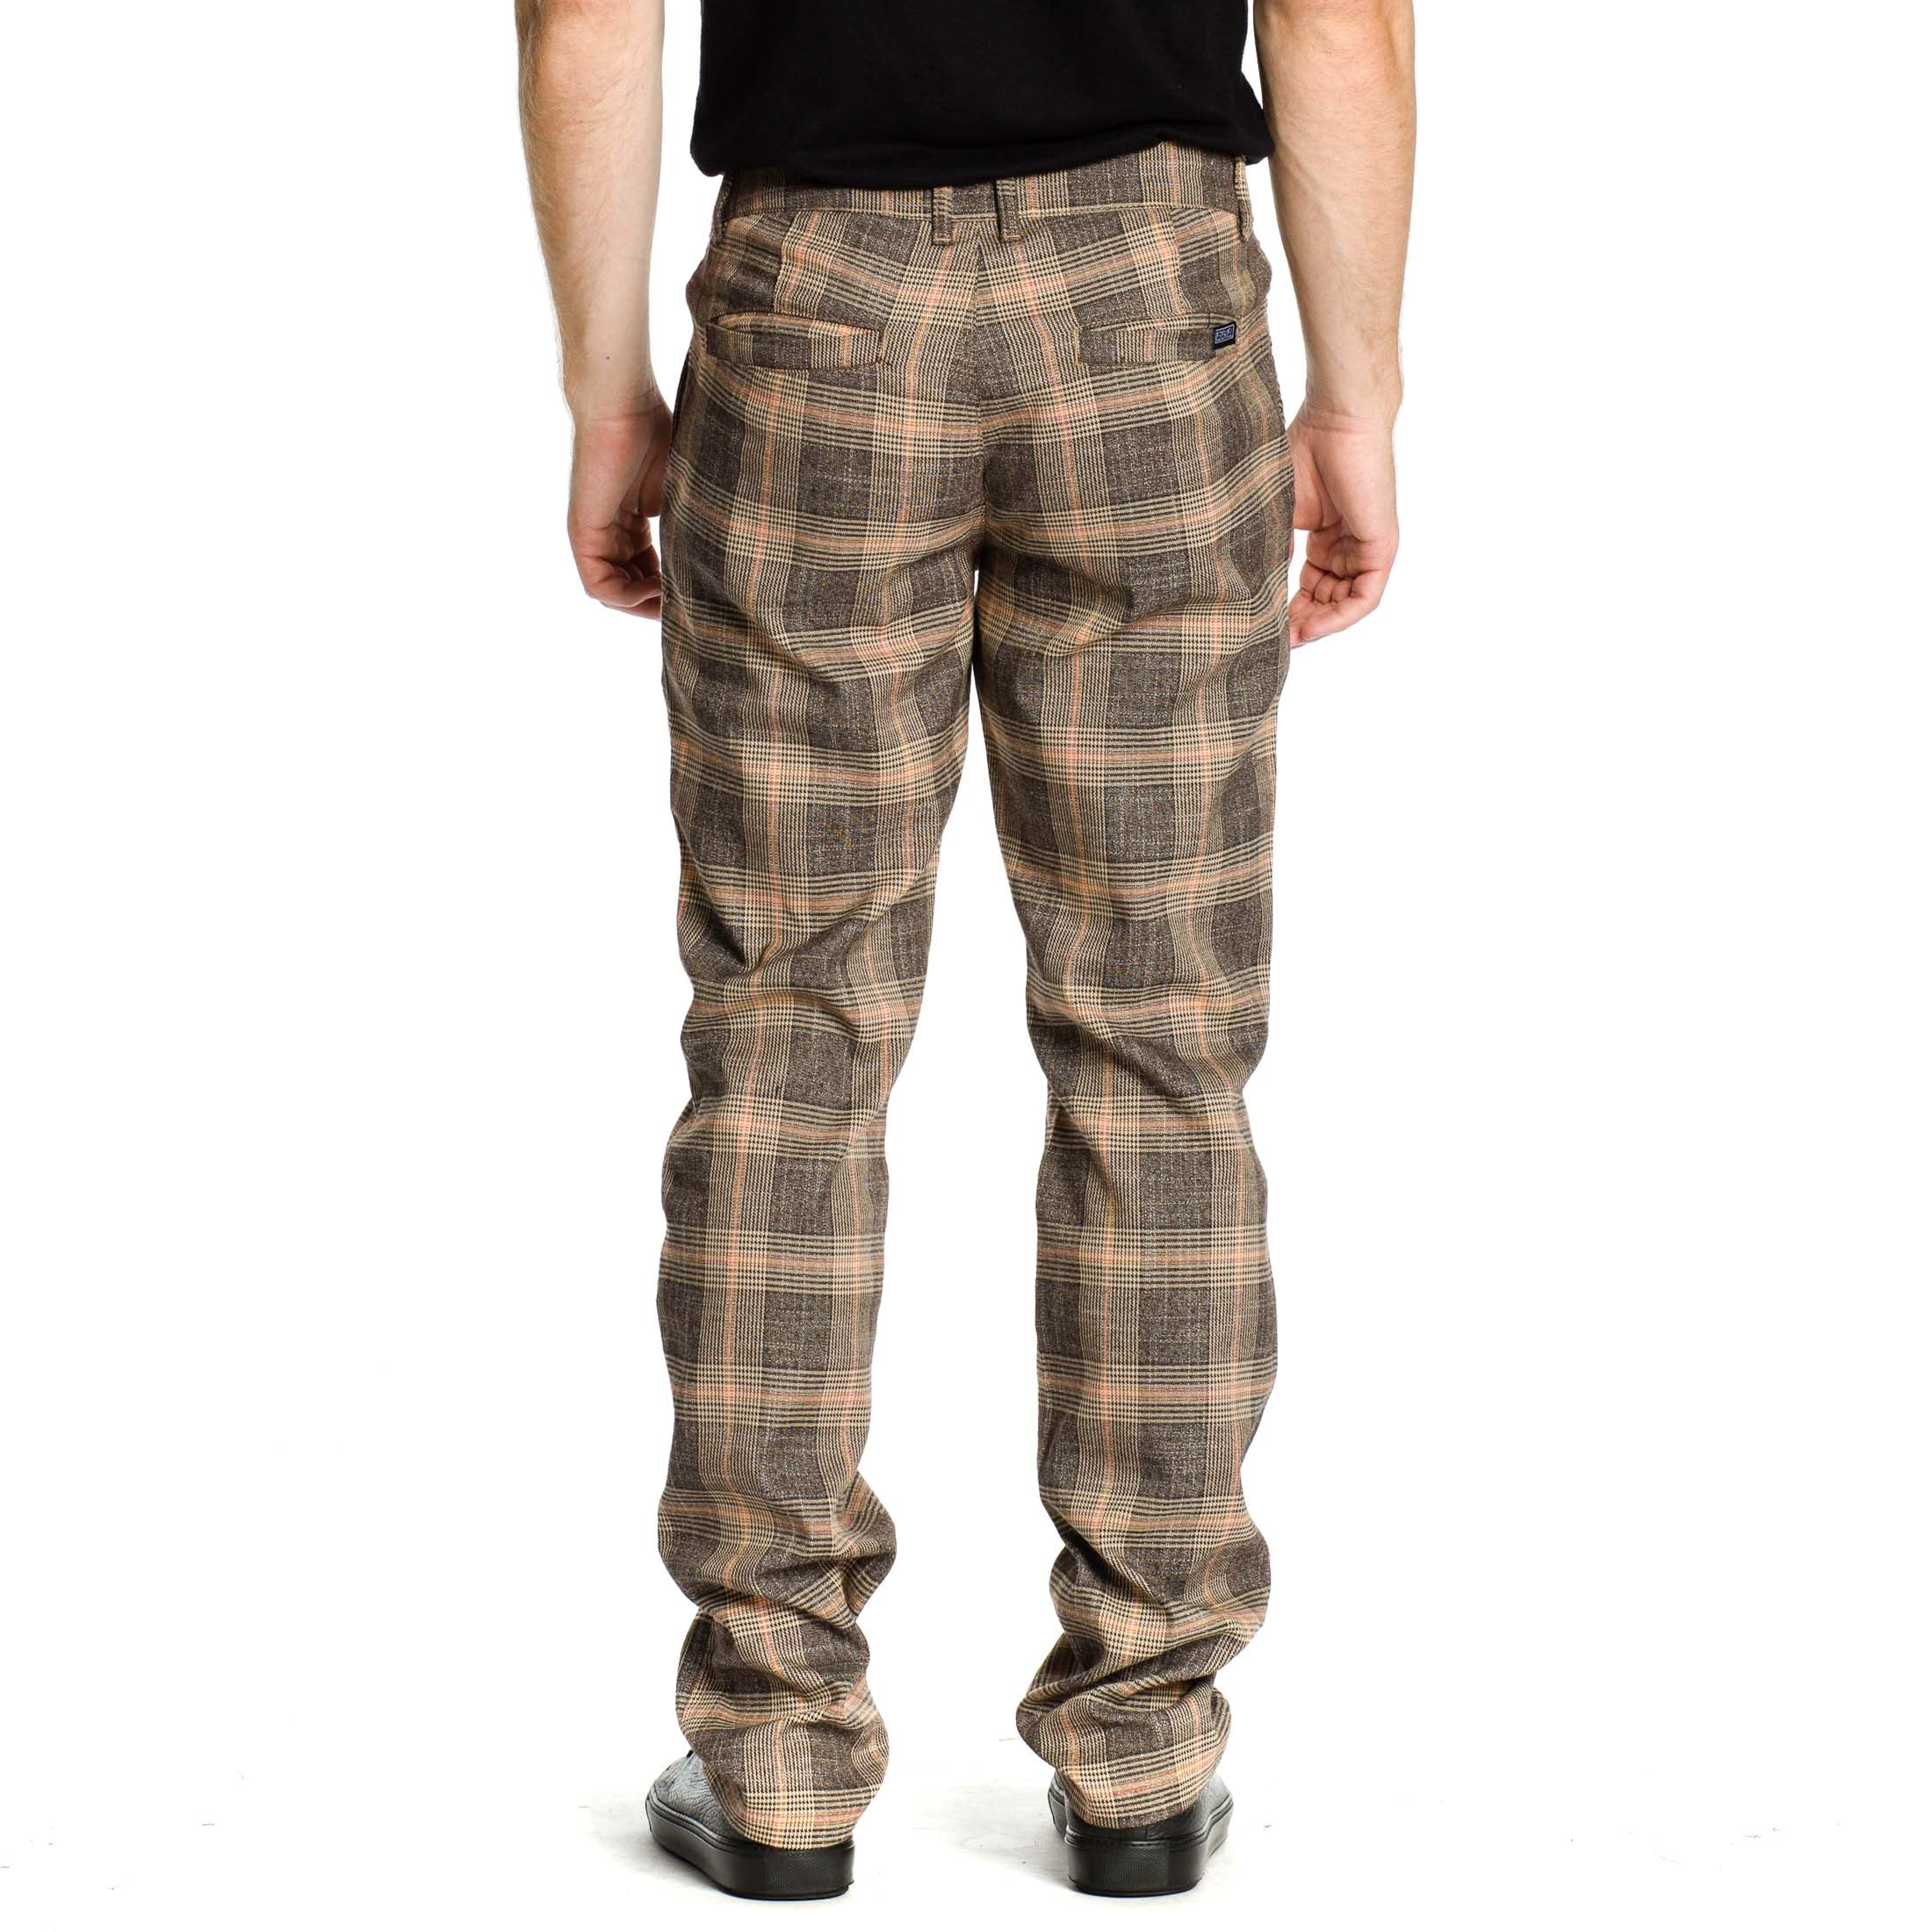 El Cholo Pant - Brown - Ezekiel Clothing